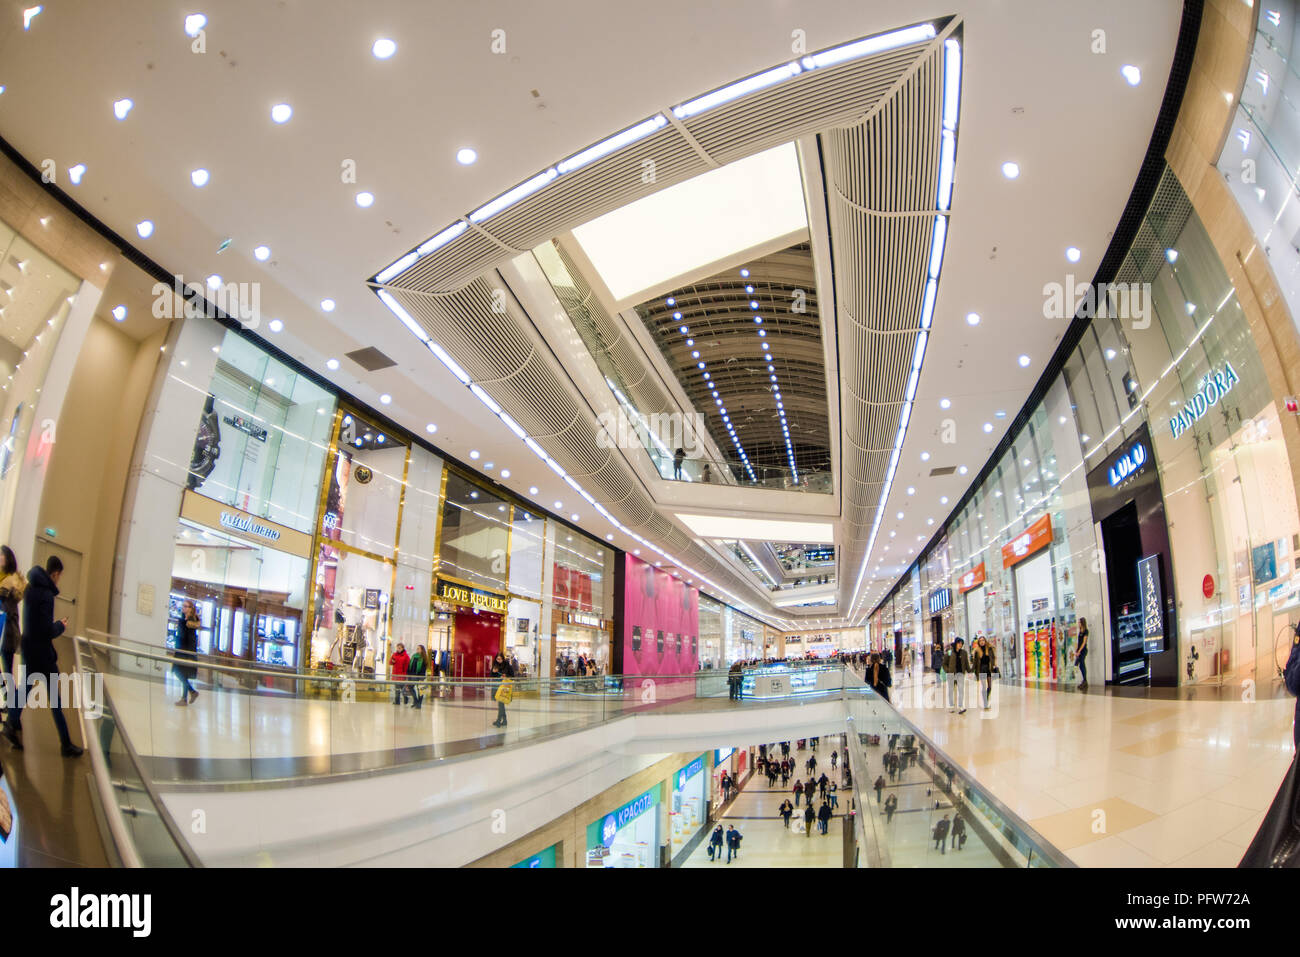 Shoppingmall High Resolution Stock Photography and Images - Alamy